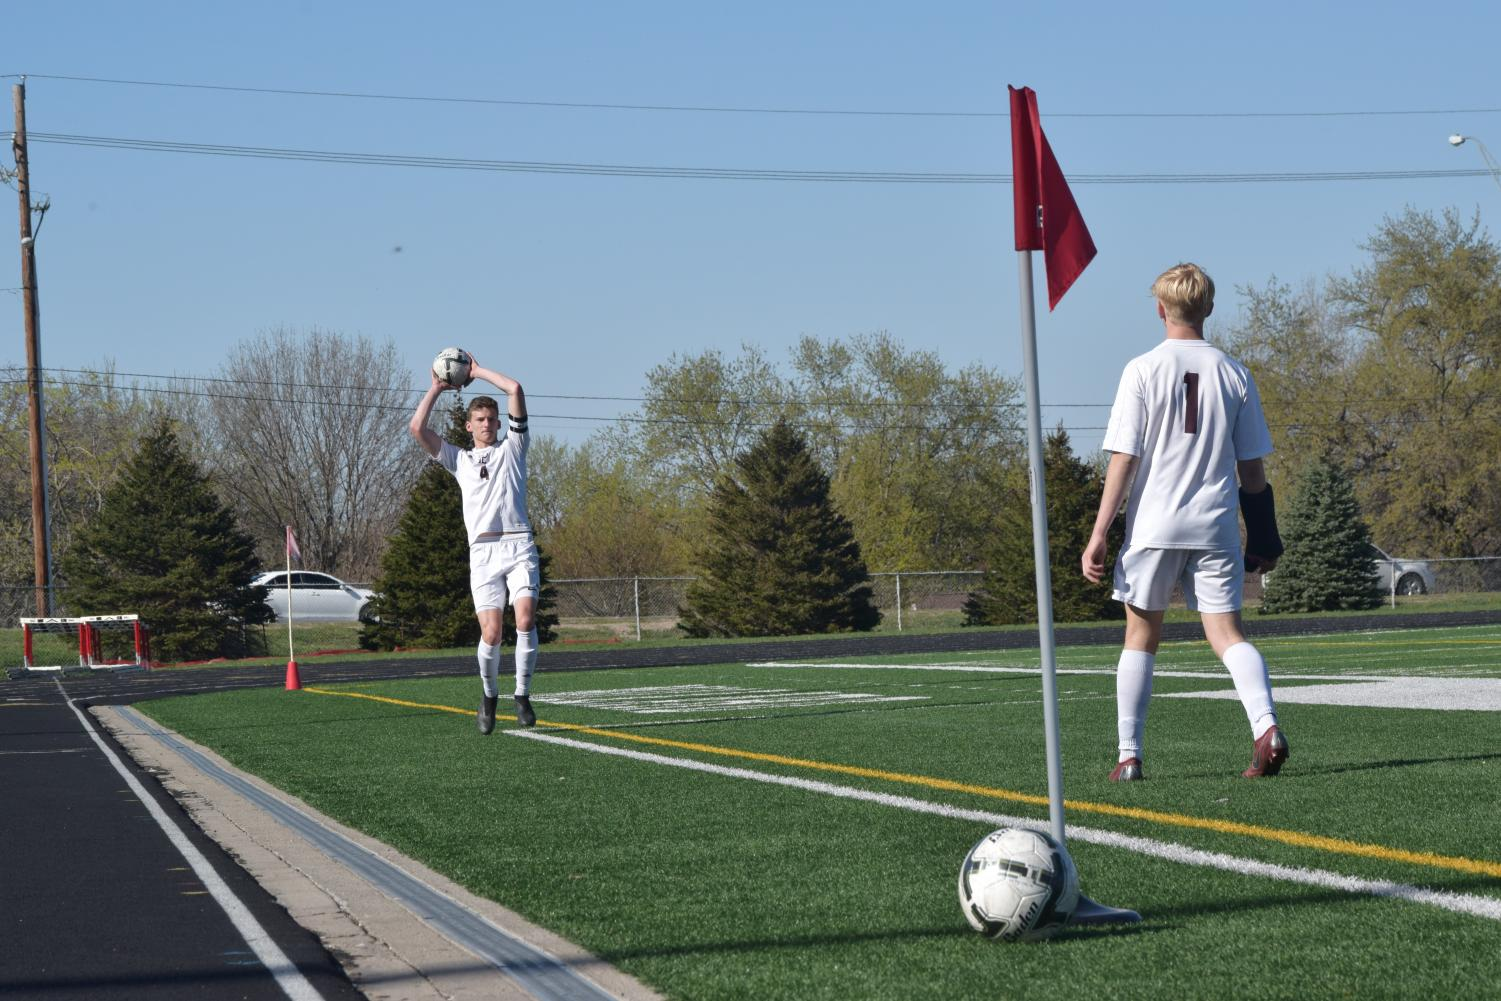 Junior+Josh+Jones+throws+in+the+ball+during+the+soccer+game+against+Millard+South.